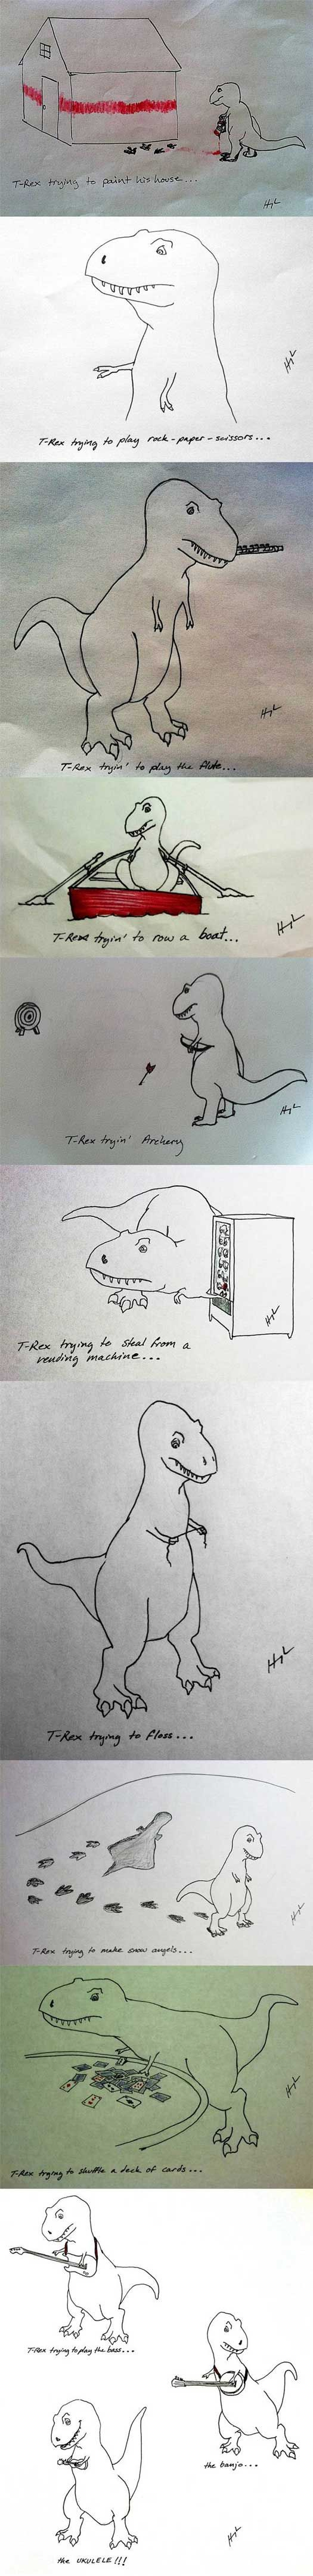 Green tea and velociraptors it s just a flesh wound - 134 Best Dinosaurs Rawr Images On Pinterest Dinosaurs Funny Stuff And Raptors